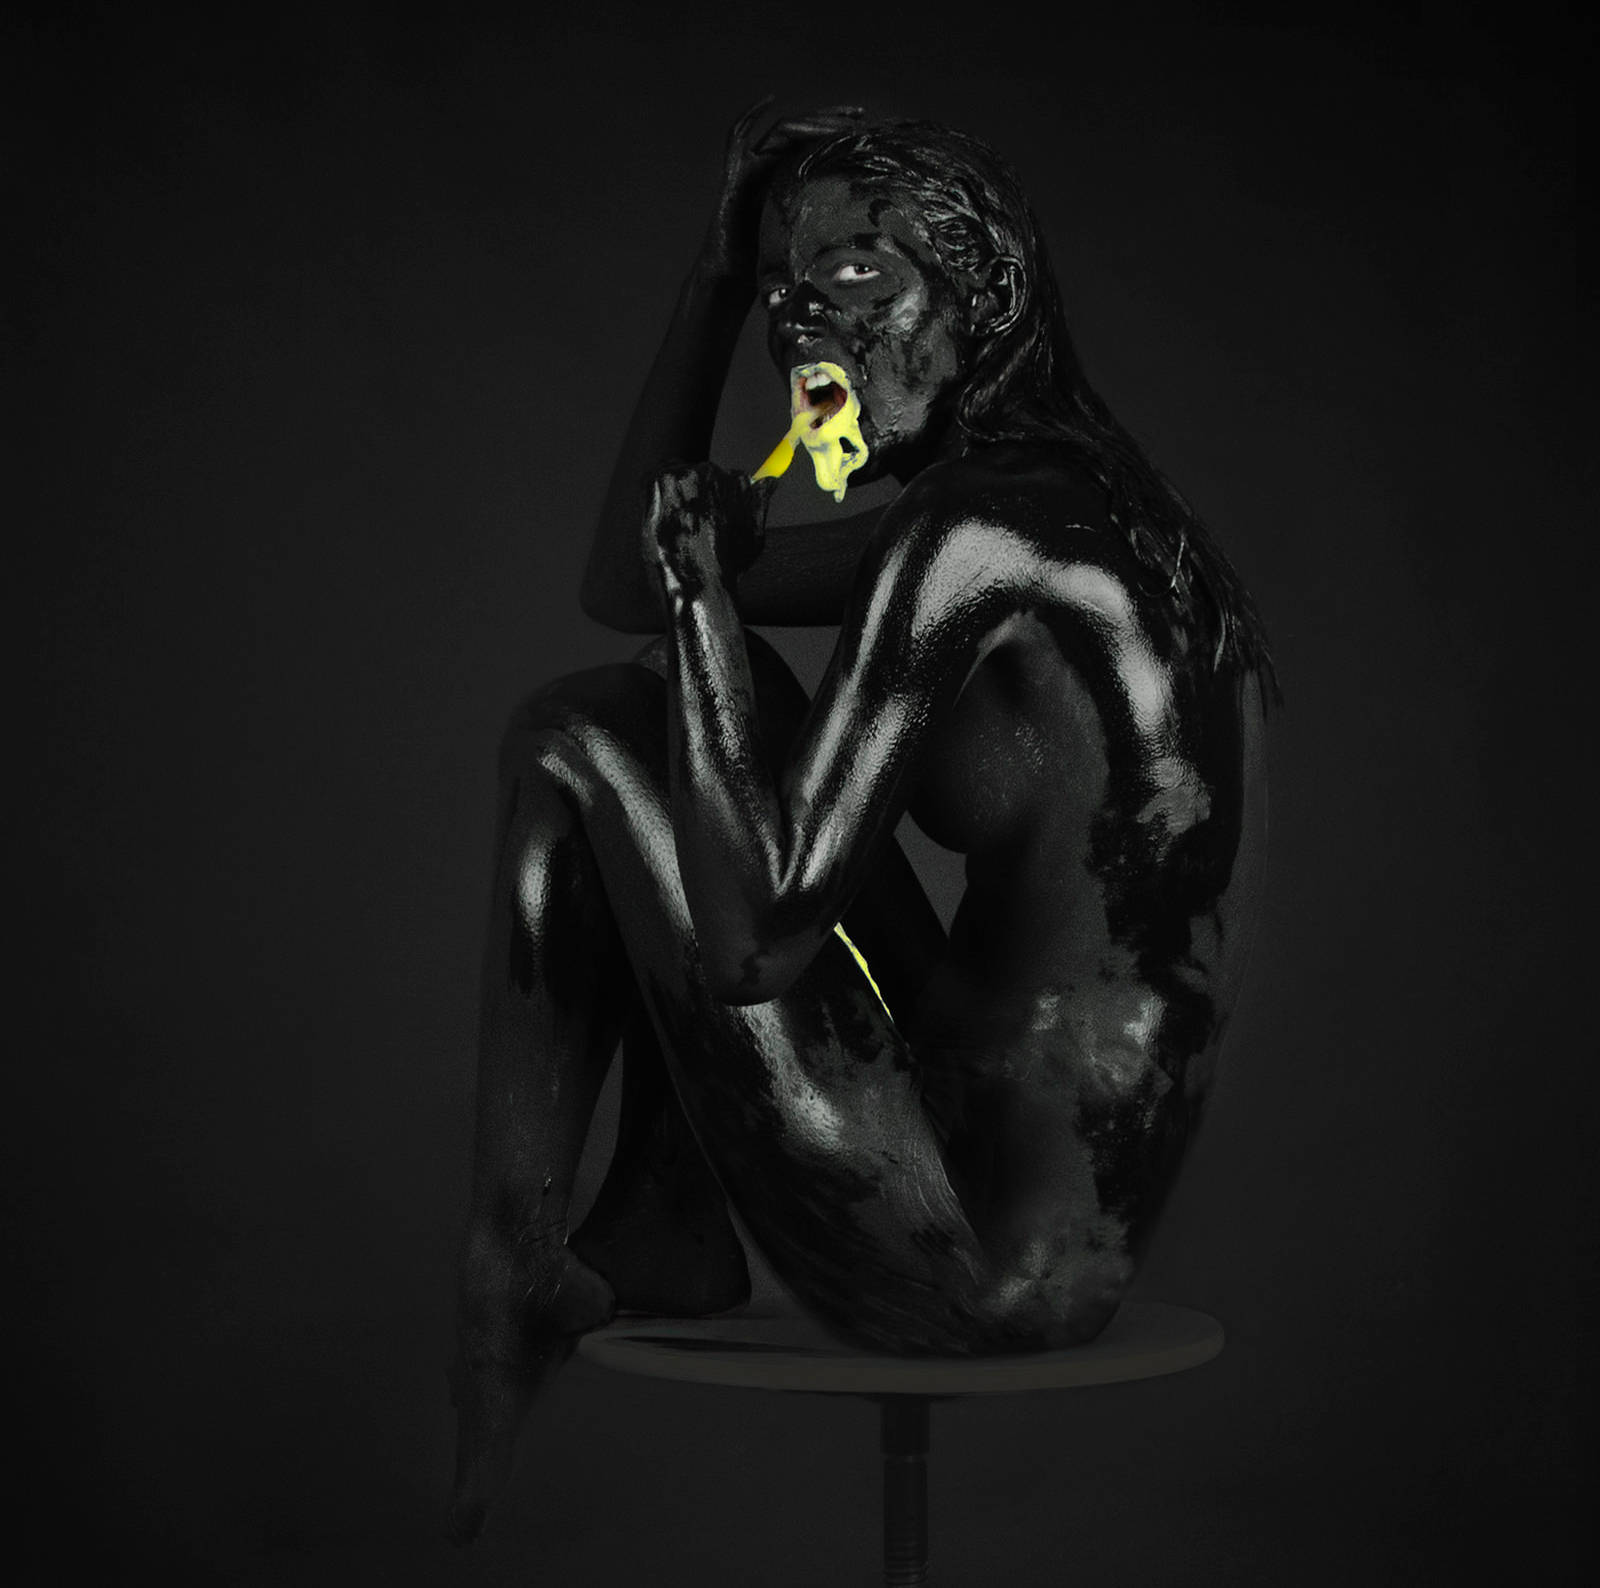 full body painting in black ink with yellow mouth, by Chiara Lombardi